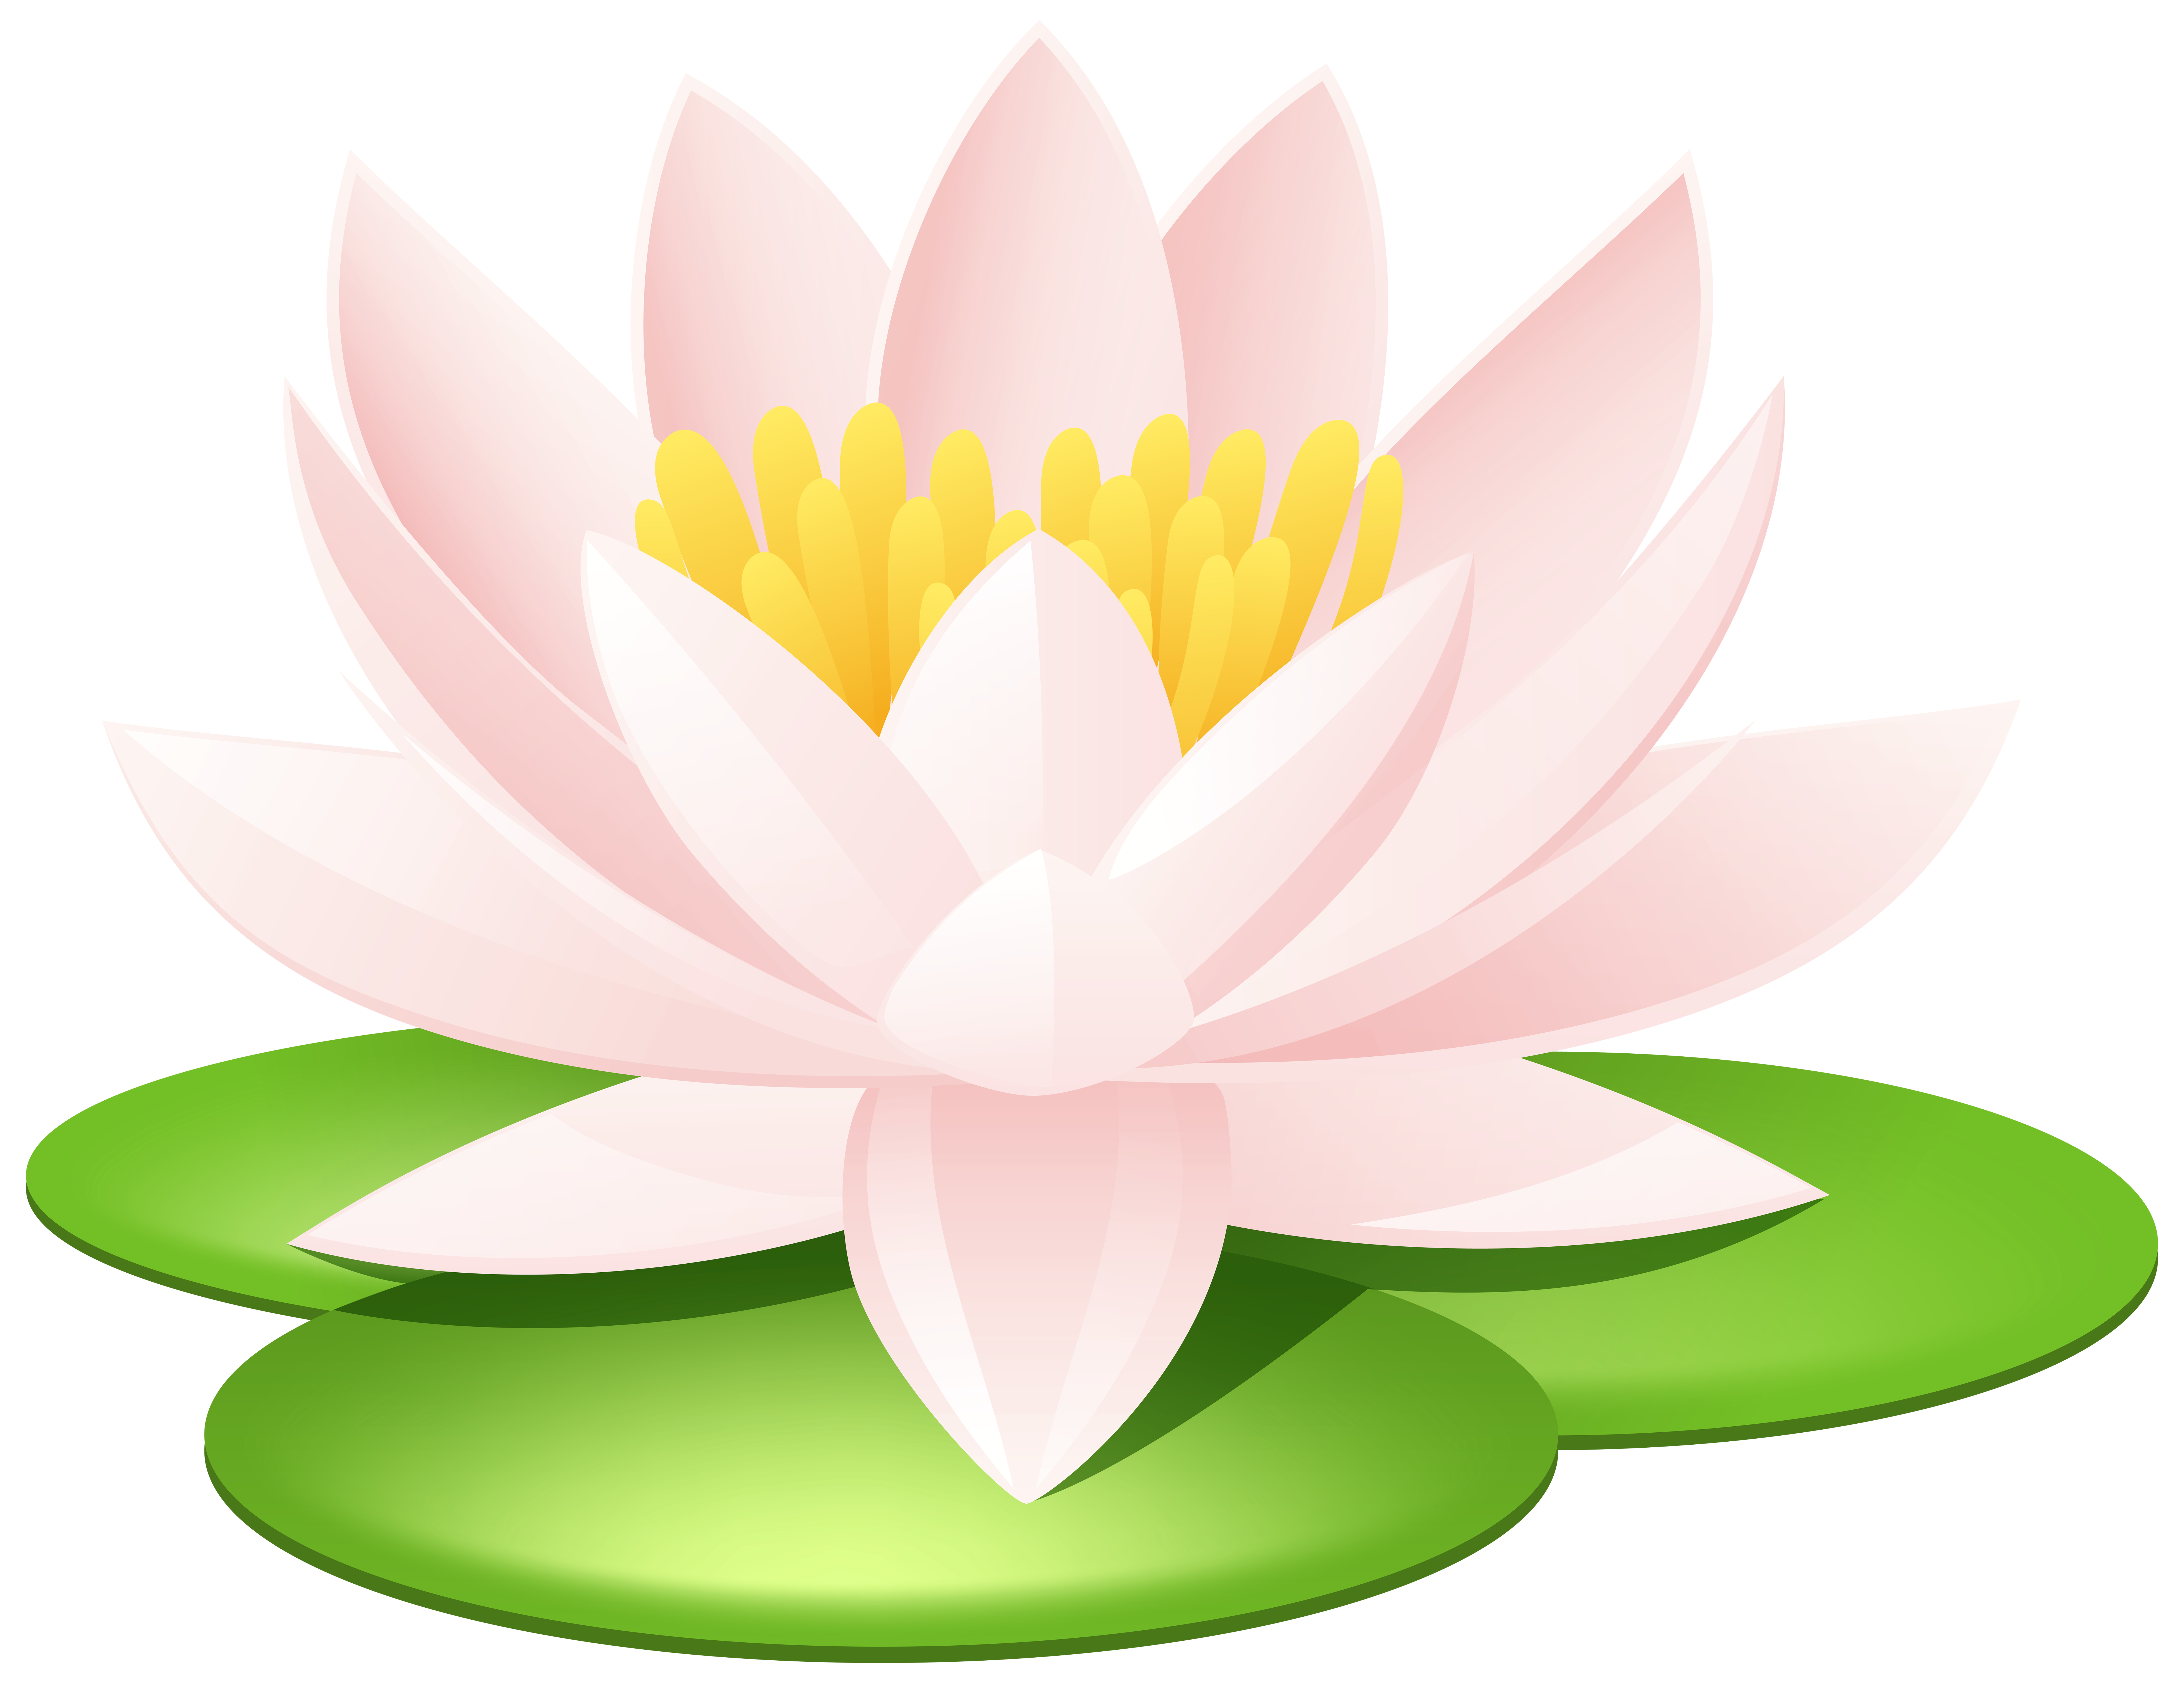 Water Lily Transparent PNG Image Кувшинки, Картинки